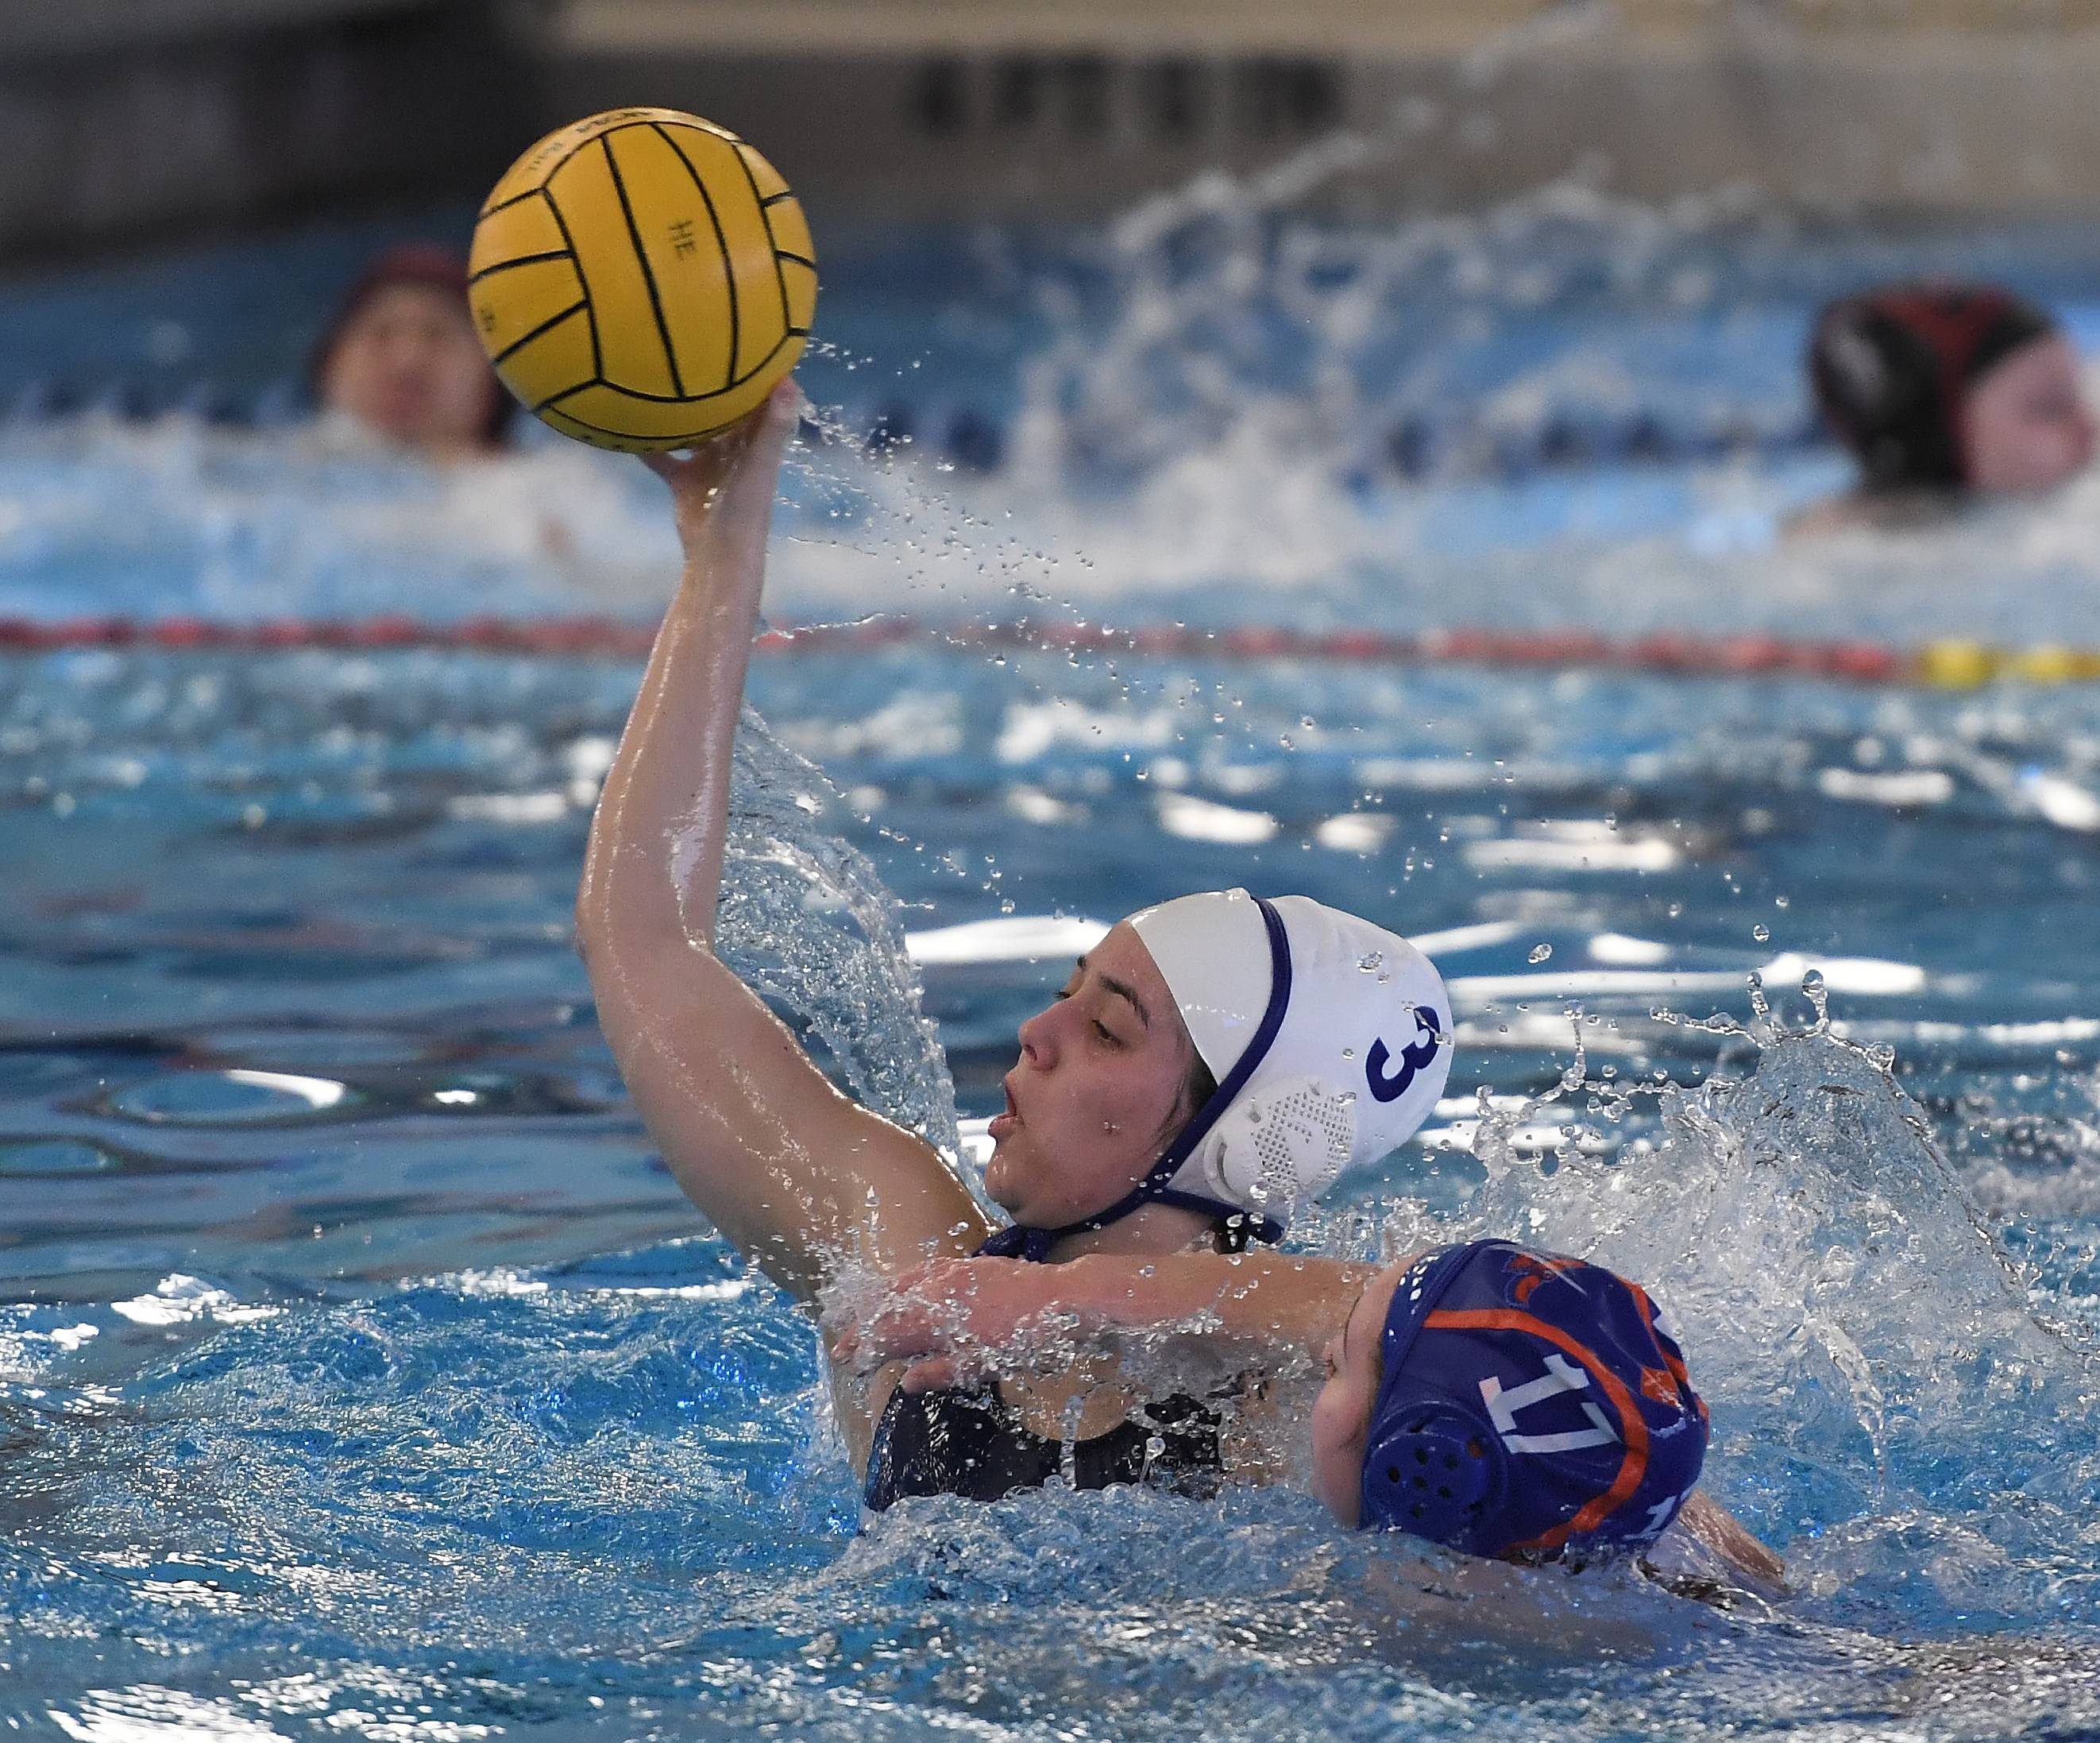 Vernon Hills' Allie Pappas fires the ball as Hoffman Estates' Ak Hughes applies pressure during the Hoffman Estates girls water polo invite on Saturday.